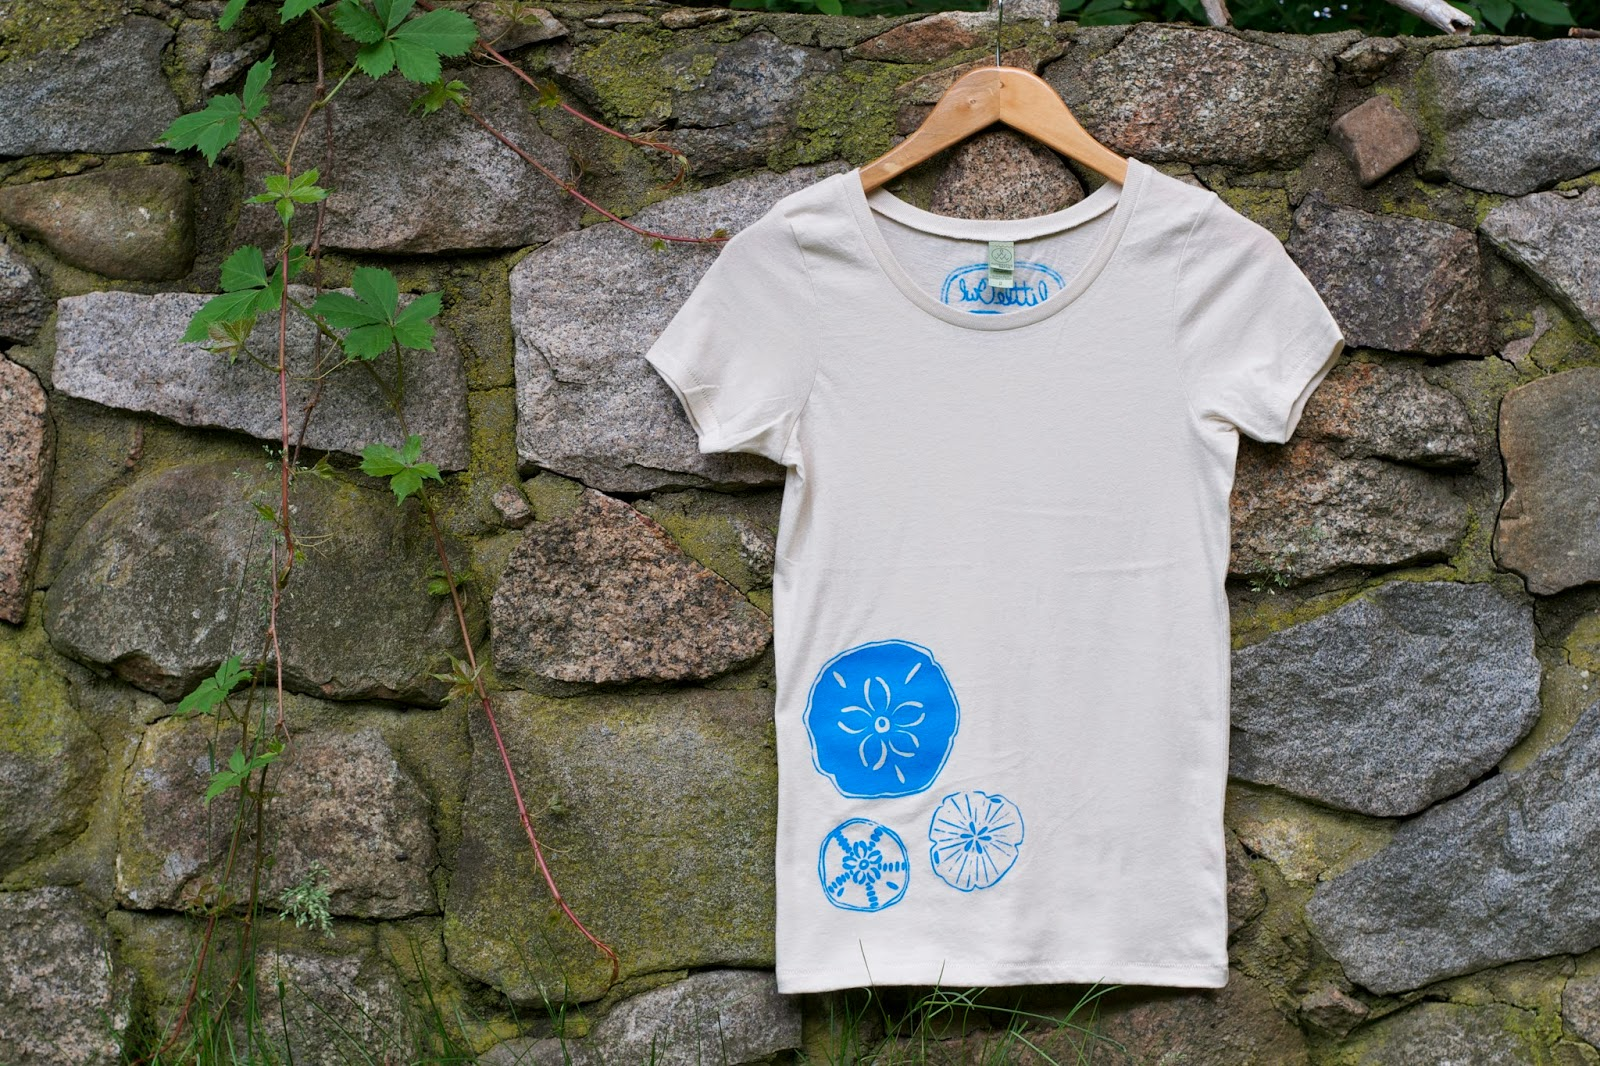 New print, new tee! Organic cotton printed with original sand dollar design.